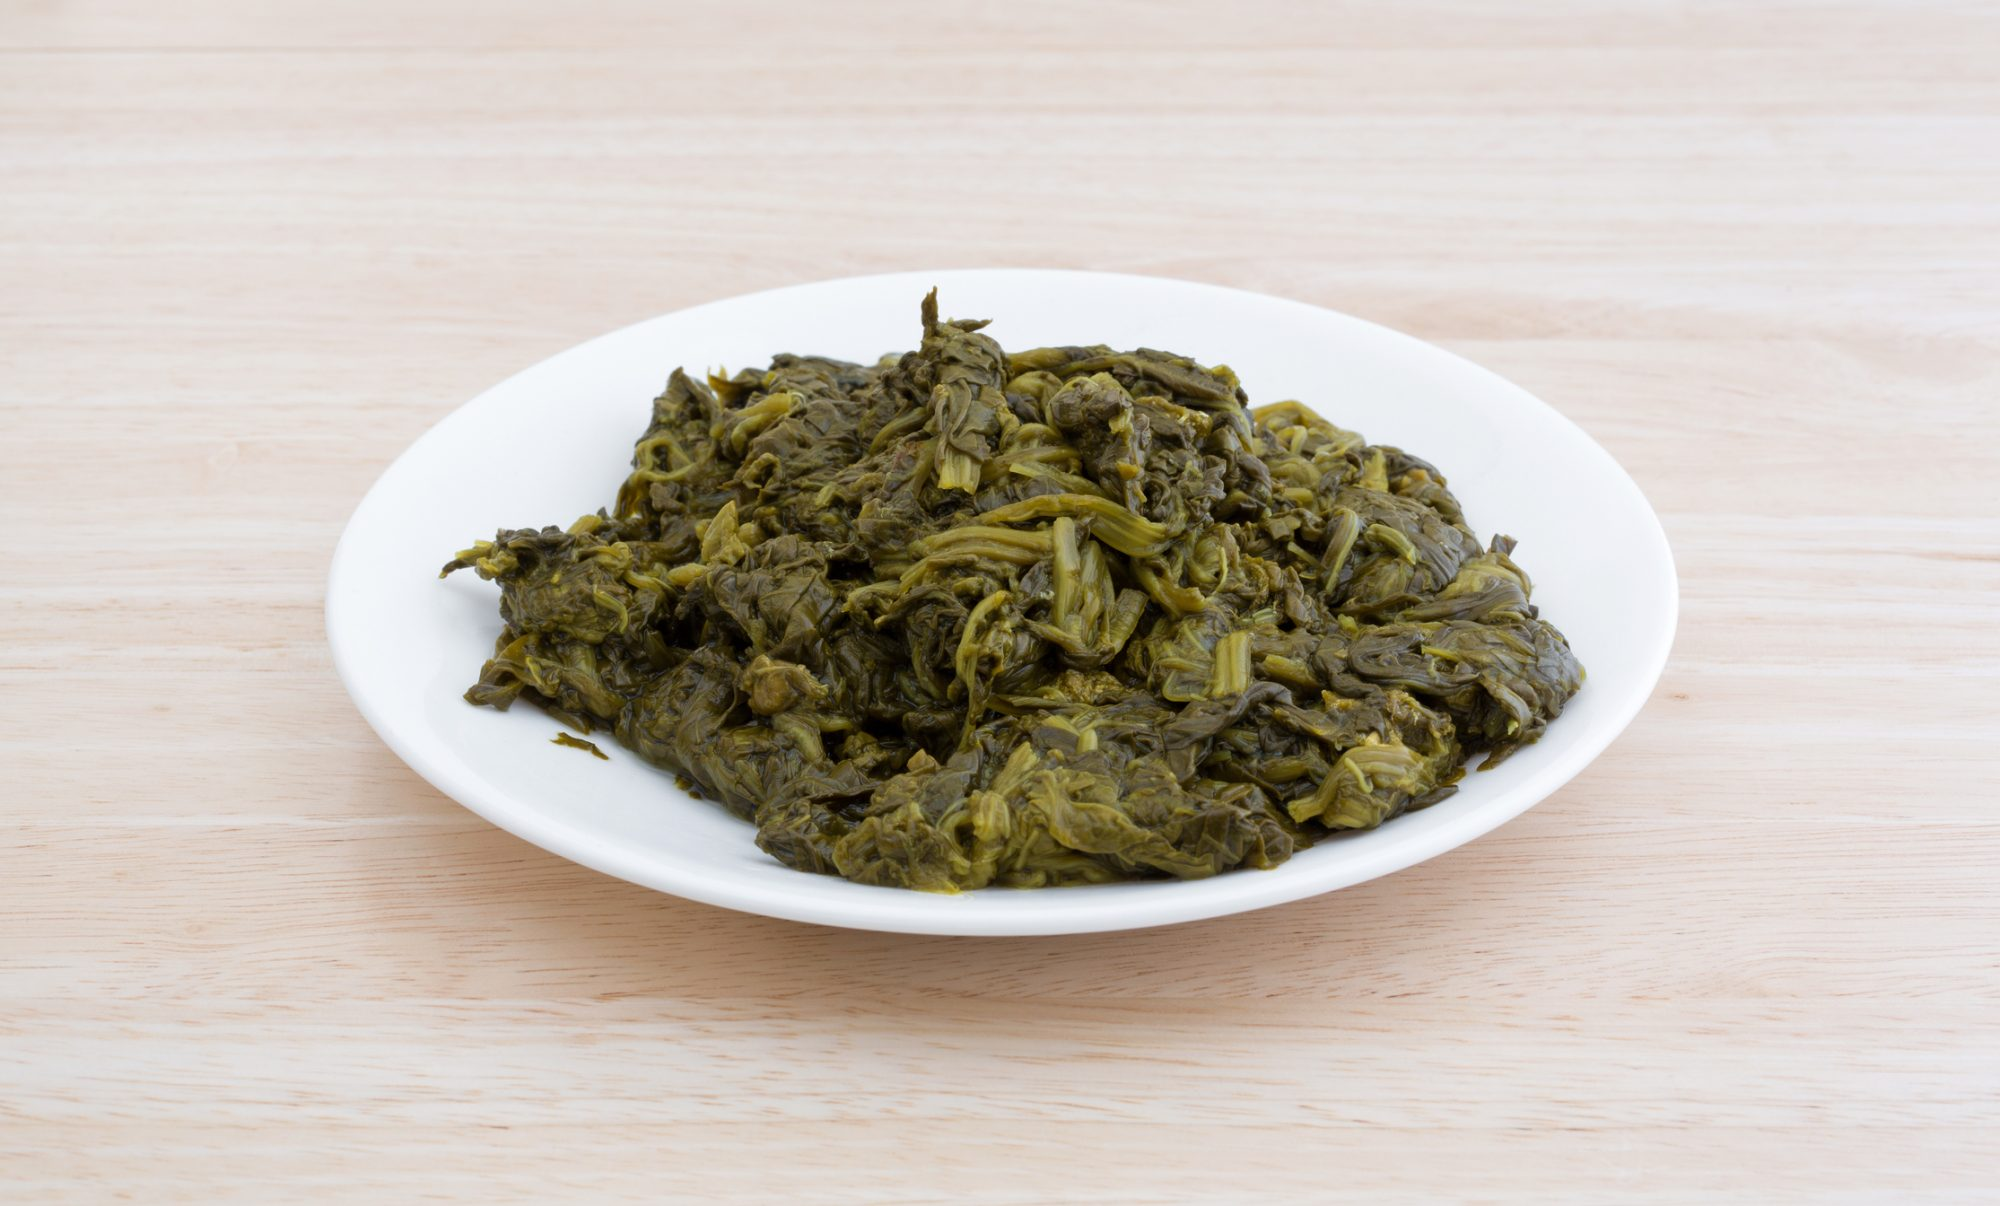 Serving of canned spinach on a white plate